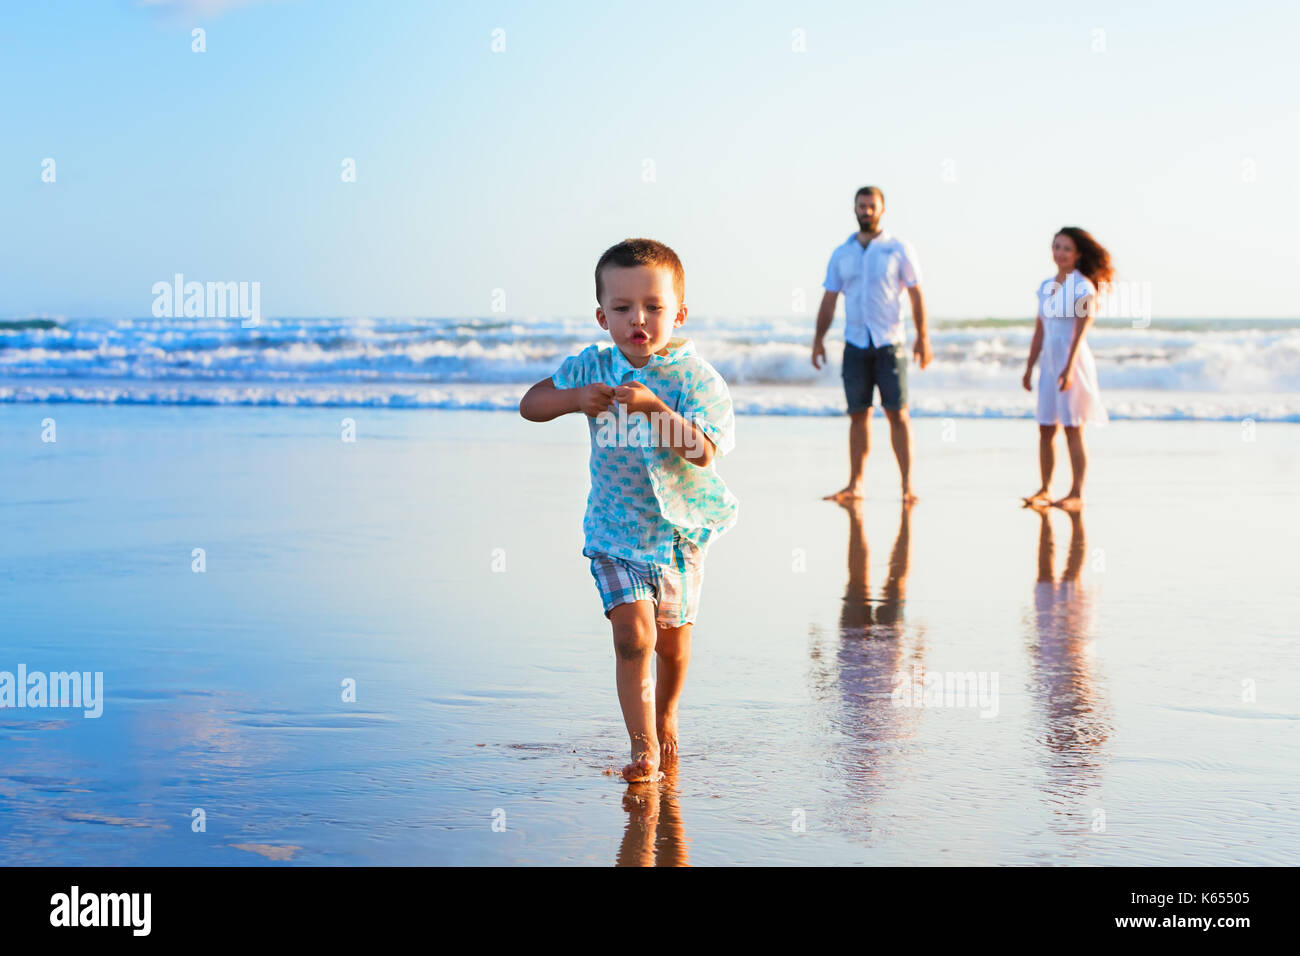 Happy Family - père, mère, fils de bébé s'amusent ensemble, les enfants s'exécutent avec éclaboussures d'eau le long de la piscine Sunset surf mer sur plage de sable noir. transport FRV Photo Stock